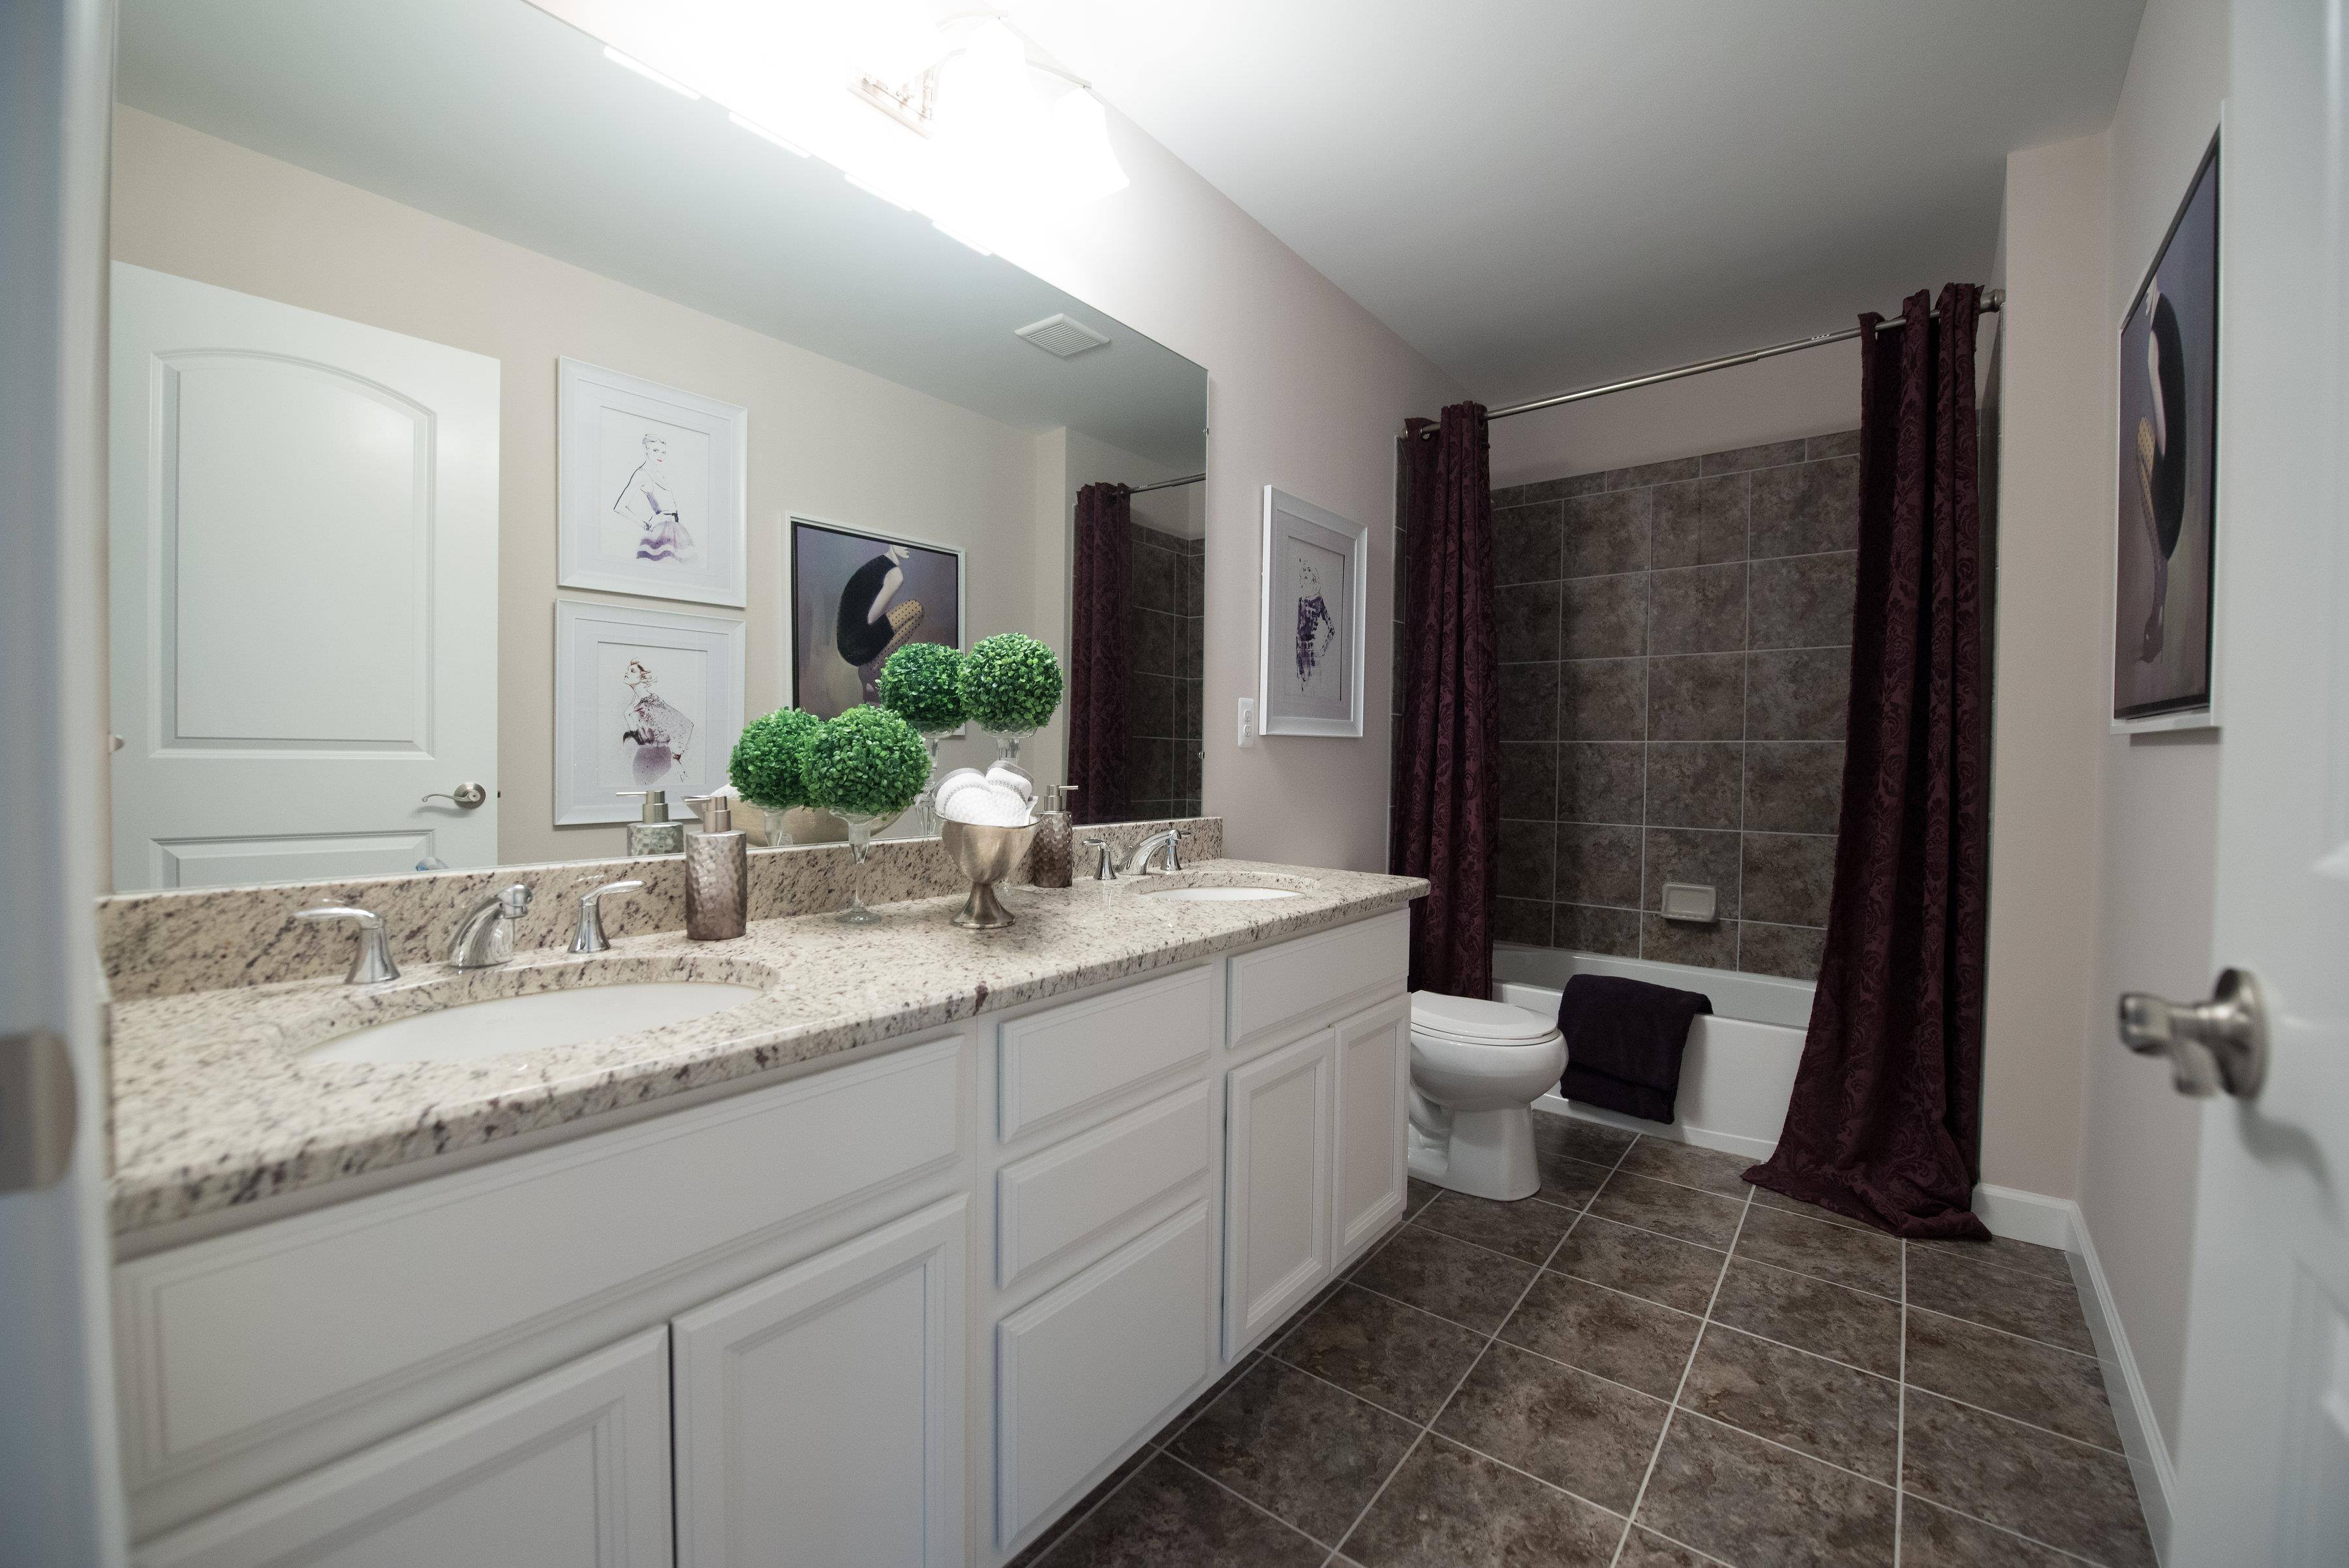 Bathroom featured in the Rockport II  By Singh Homes in Detroit, MI